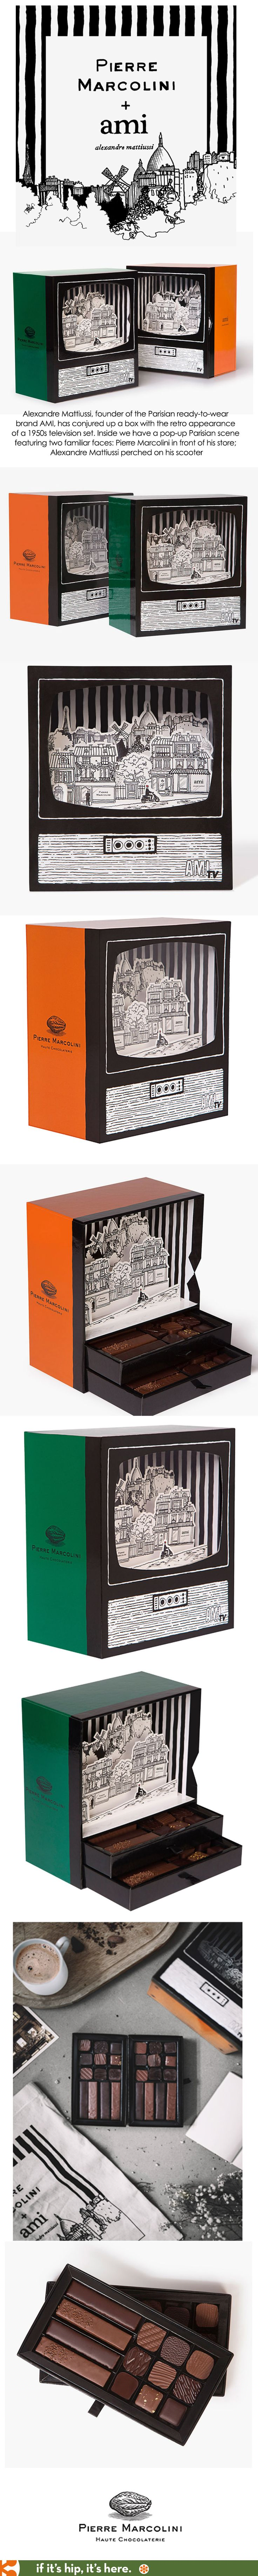 Alexandre Mattiussi and Pierre Marcolini are delighted to announce their…